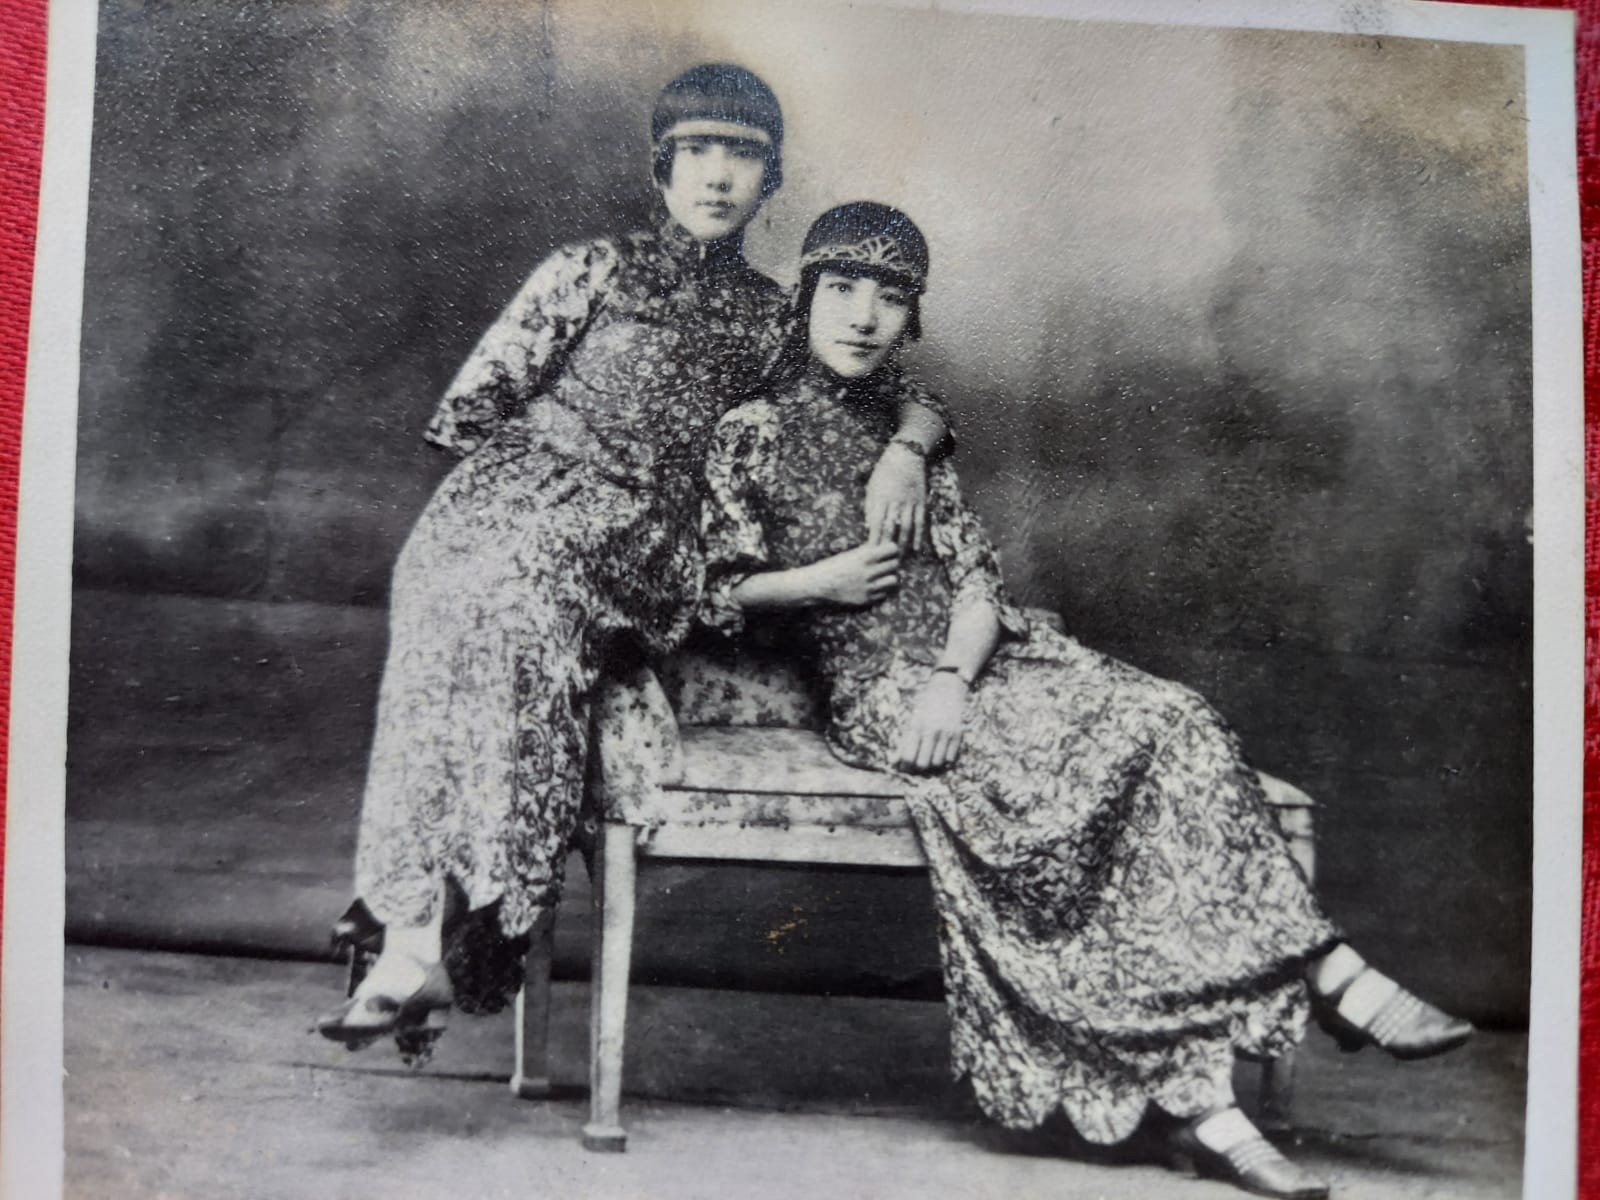 Black and white old photo of two young Chinese women lounge posing in long, floral gowns, 1910s/1920s style bob haircuts.